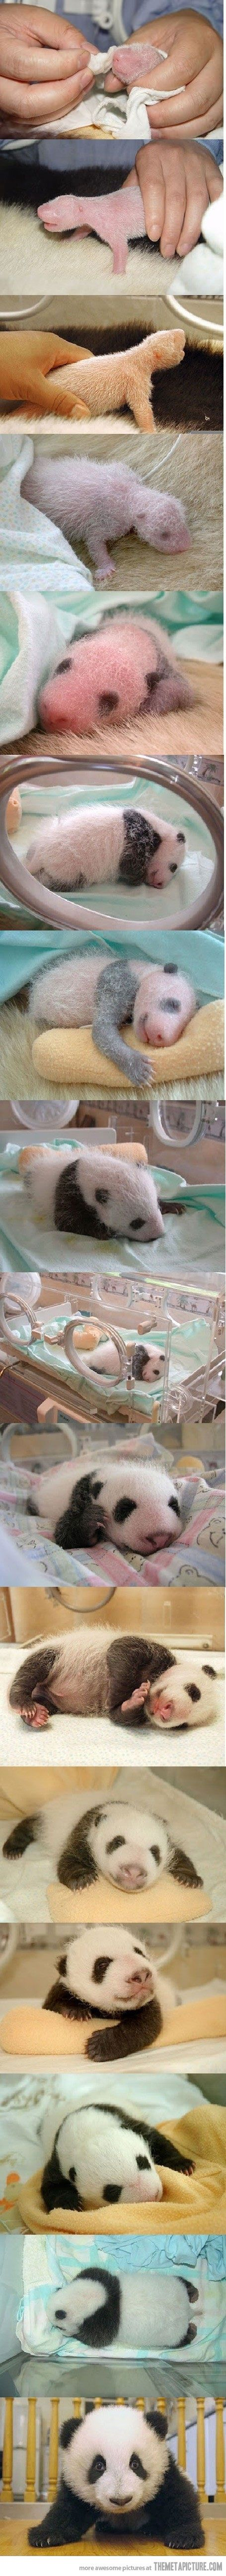 Baby panda facts:  -About the size of a stick of butter at birth  -Born hairless  -Eyes open at 50 to 60 days of age  -Begin to crawl at about 10 weeks  -Nurses til about 18 months